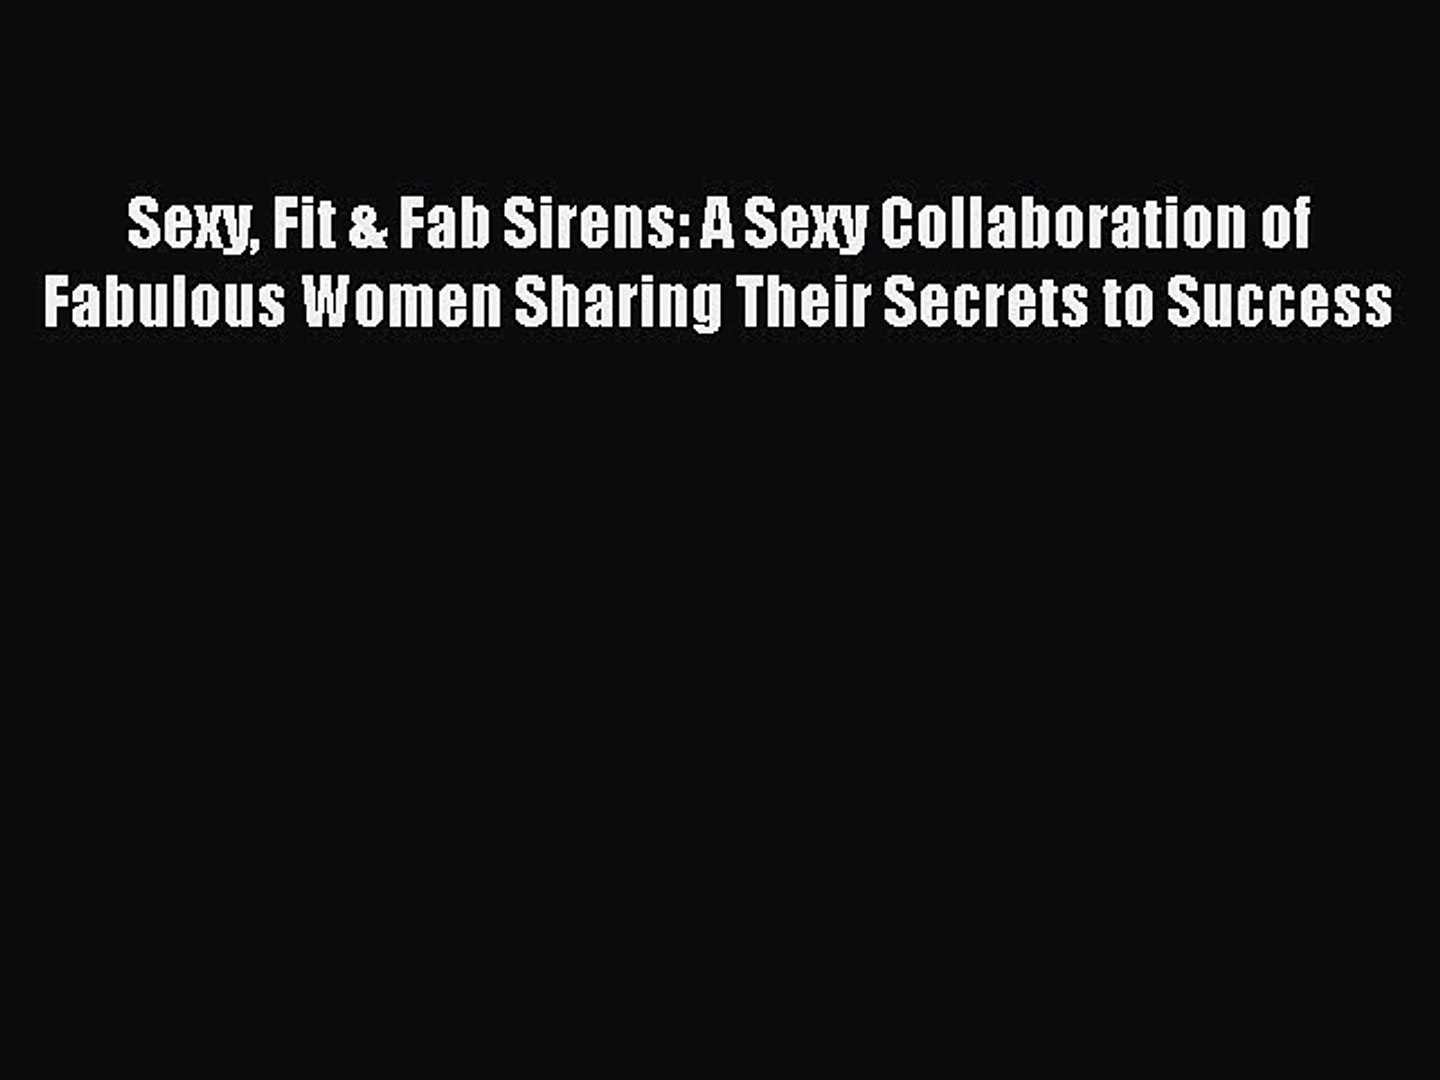 [Read Book] Sexy Fit & Fab Sirens: A Sexy Collaboration of Fabulous Women Sharing Their Secrets